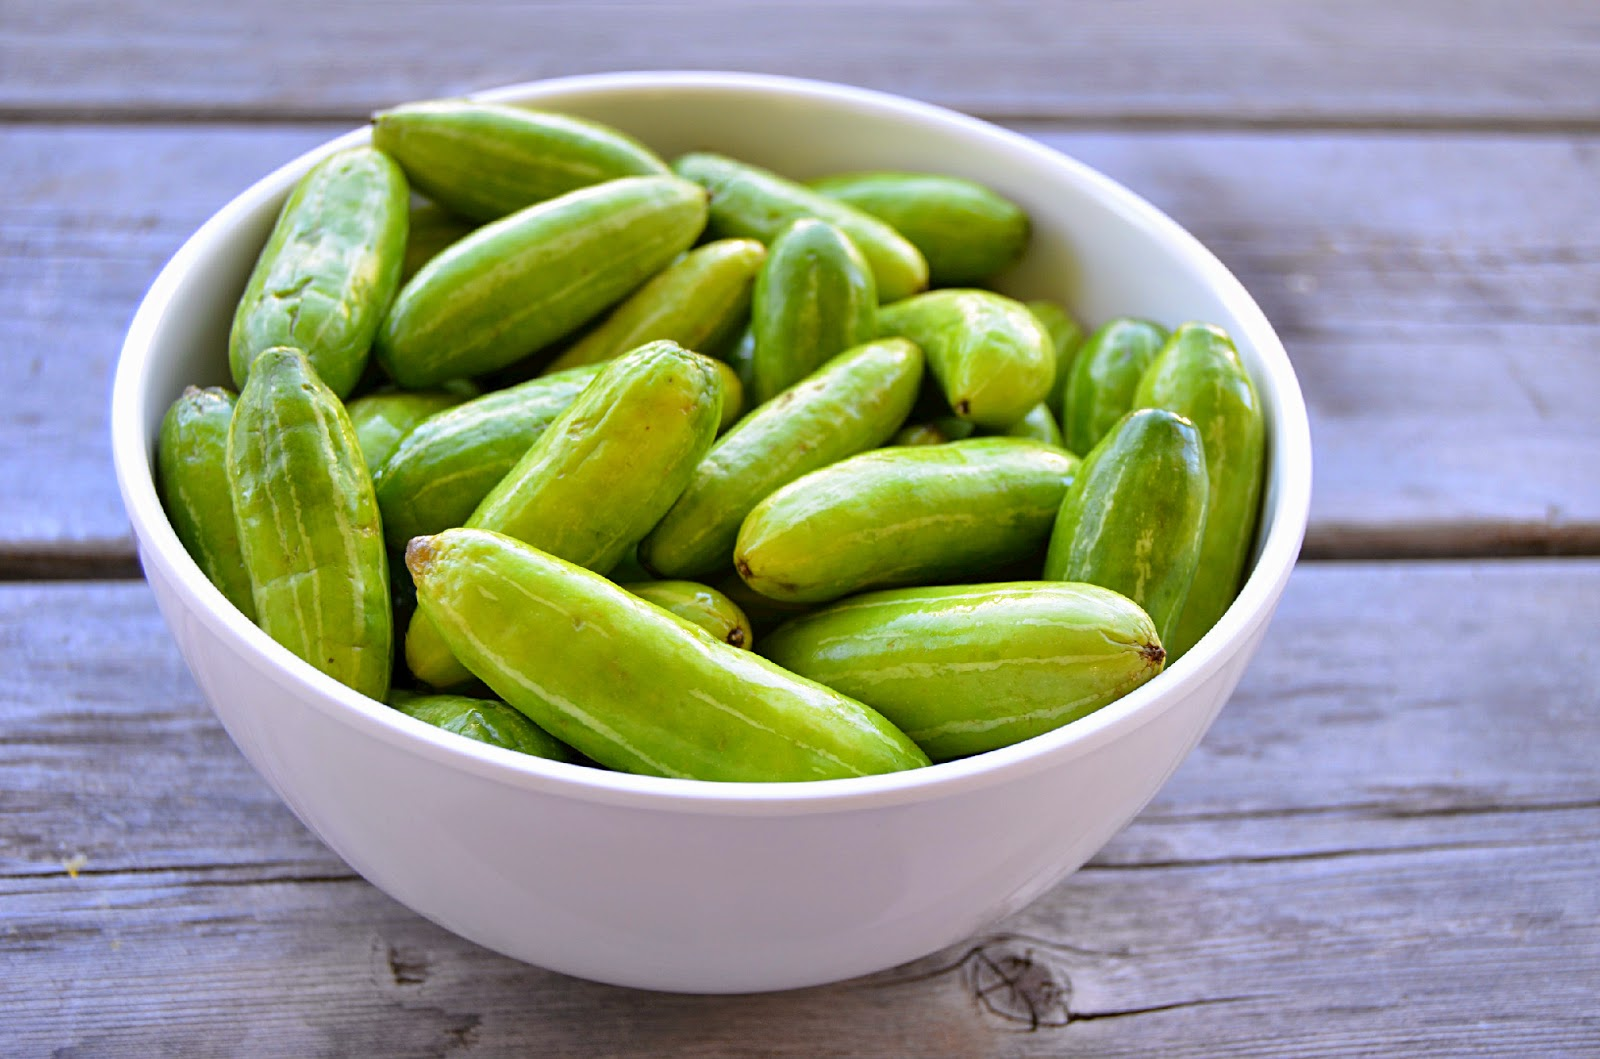 Ivy Gourd for the treatment of diabetes